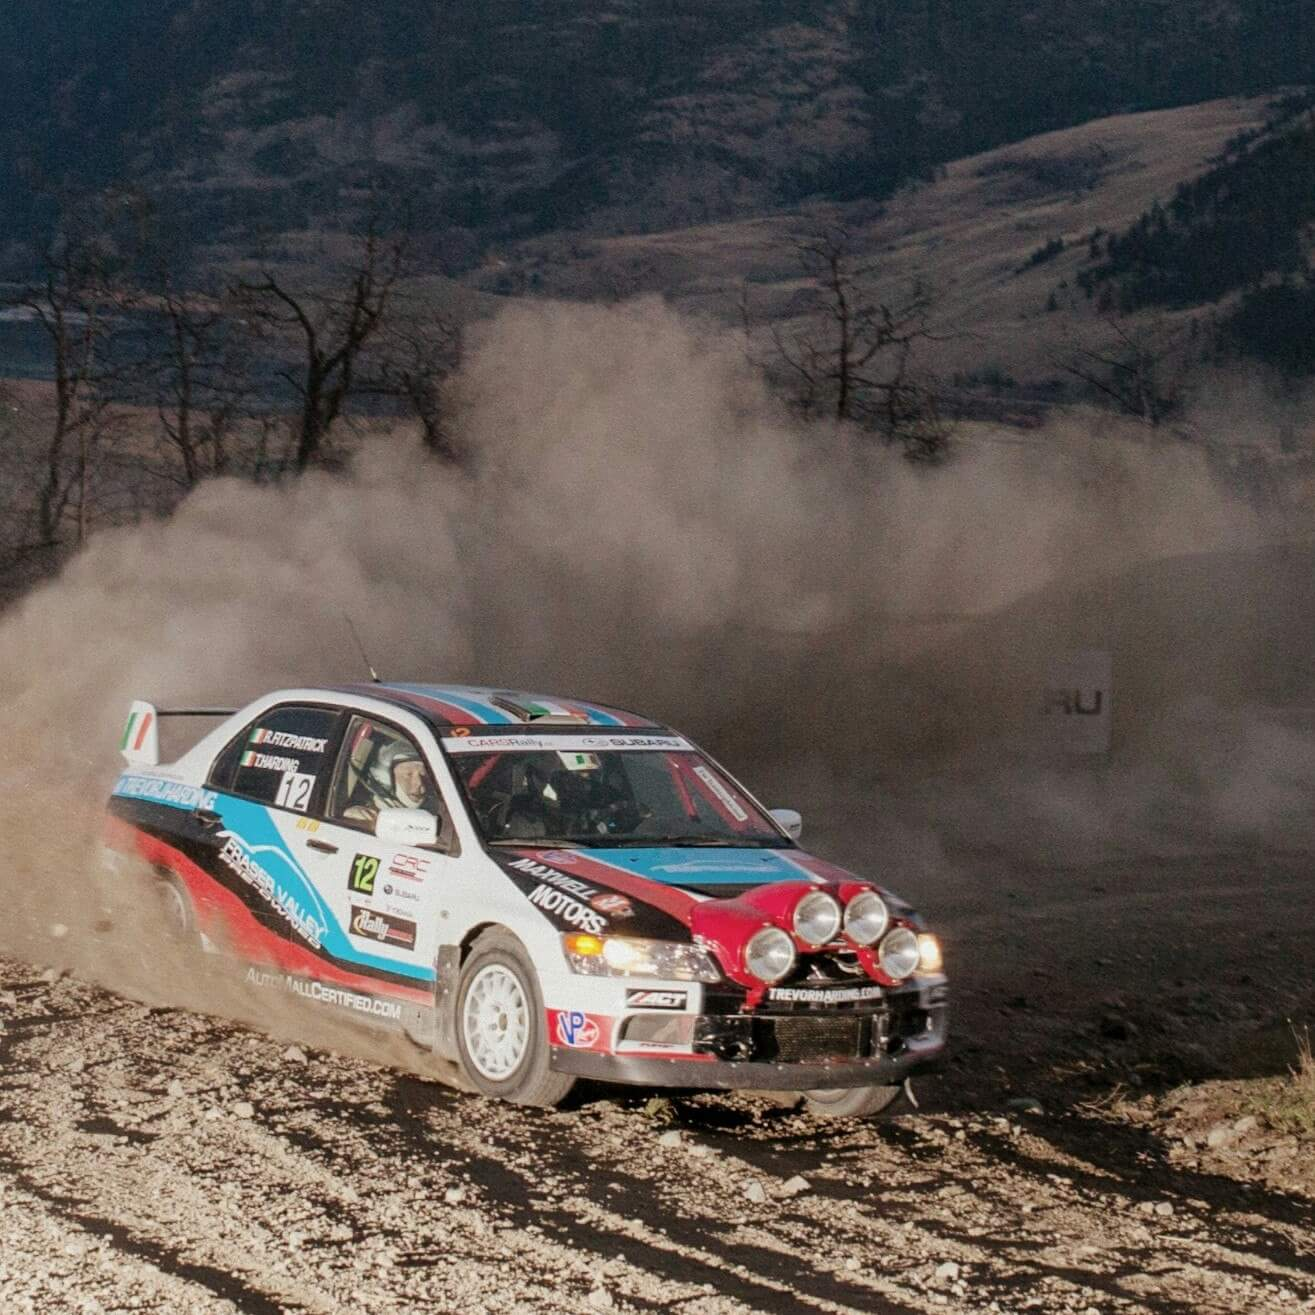 Mitsubishi lancer EVO RALLY CAR For Sale in Vancouver - $37500